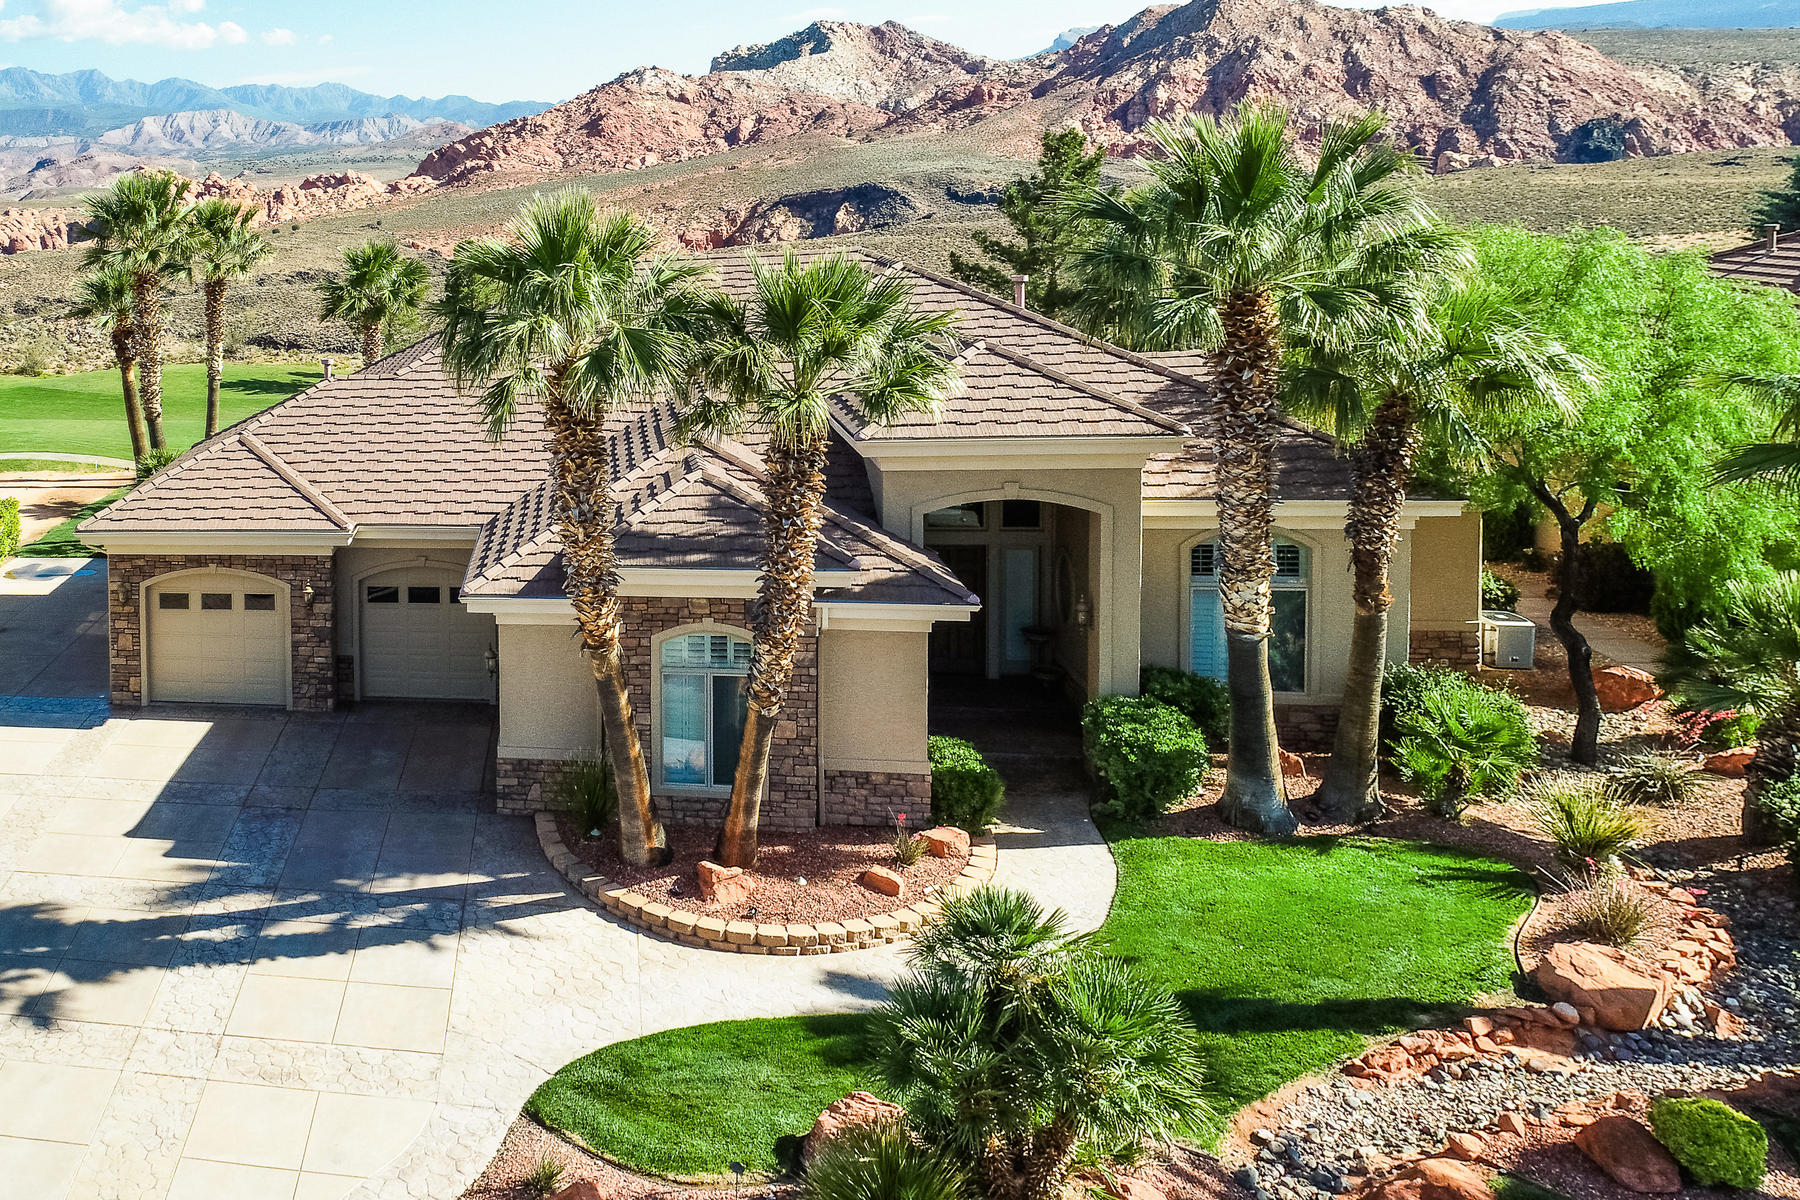 Single Family Homes için Satış at Gorgeous Red Rock Views on Sky Mountain Golf Course 2348 West 1050 North, Hurricane, Utah 84737 Amerika Birleşik Devletleri